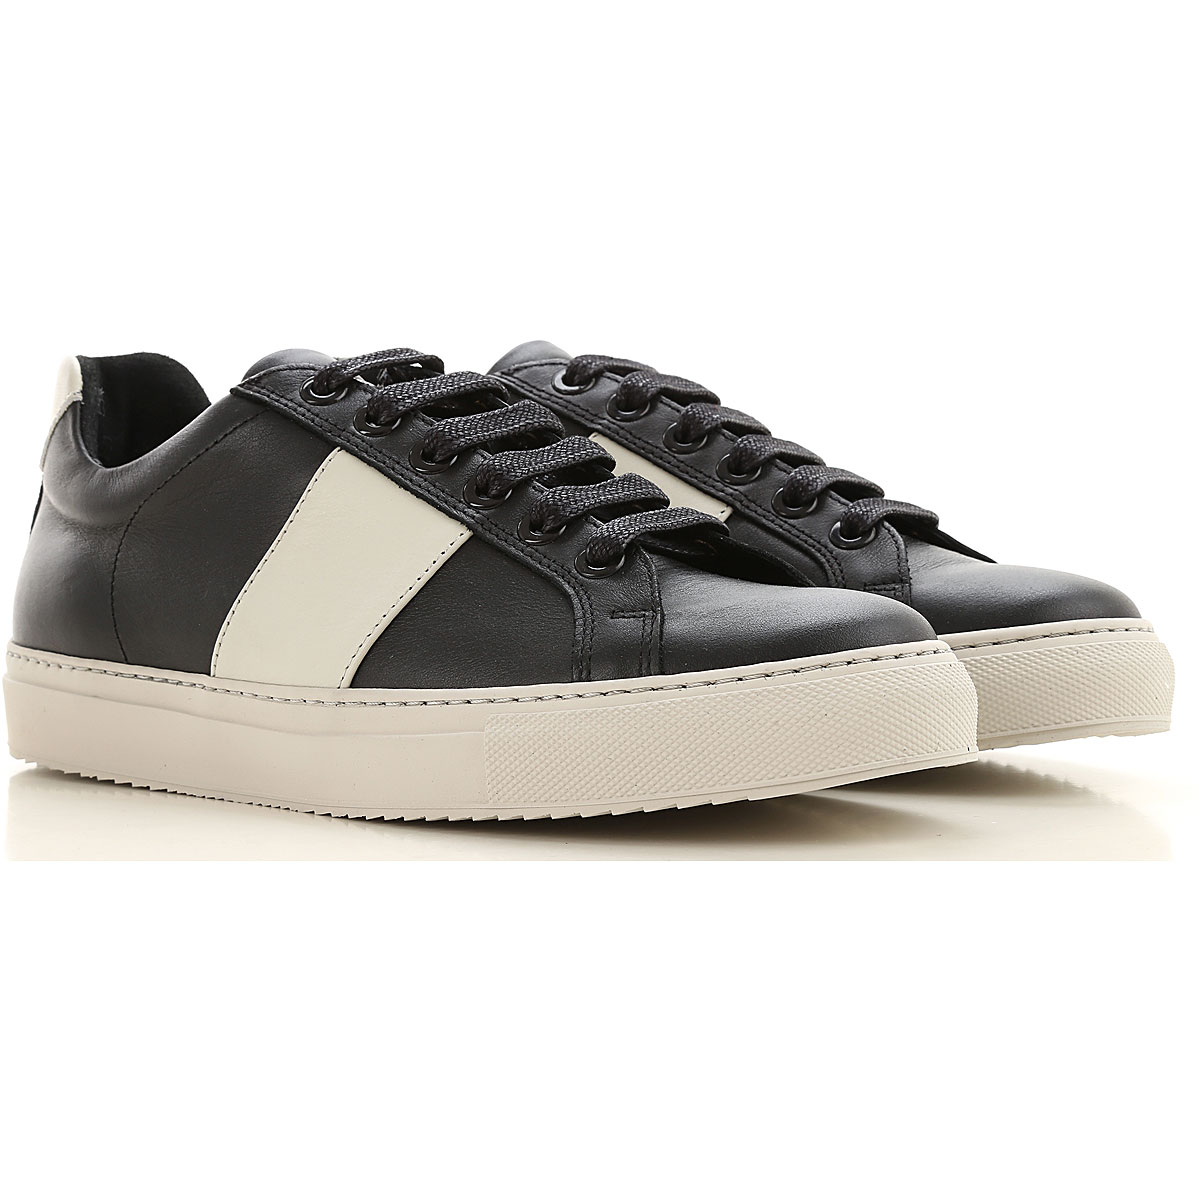 National Standard Sneakers for Men On Sale, Black, Leather, 2019, 7 8